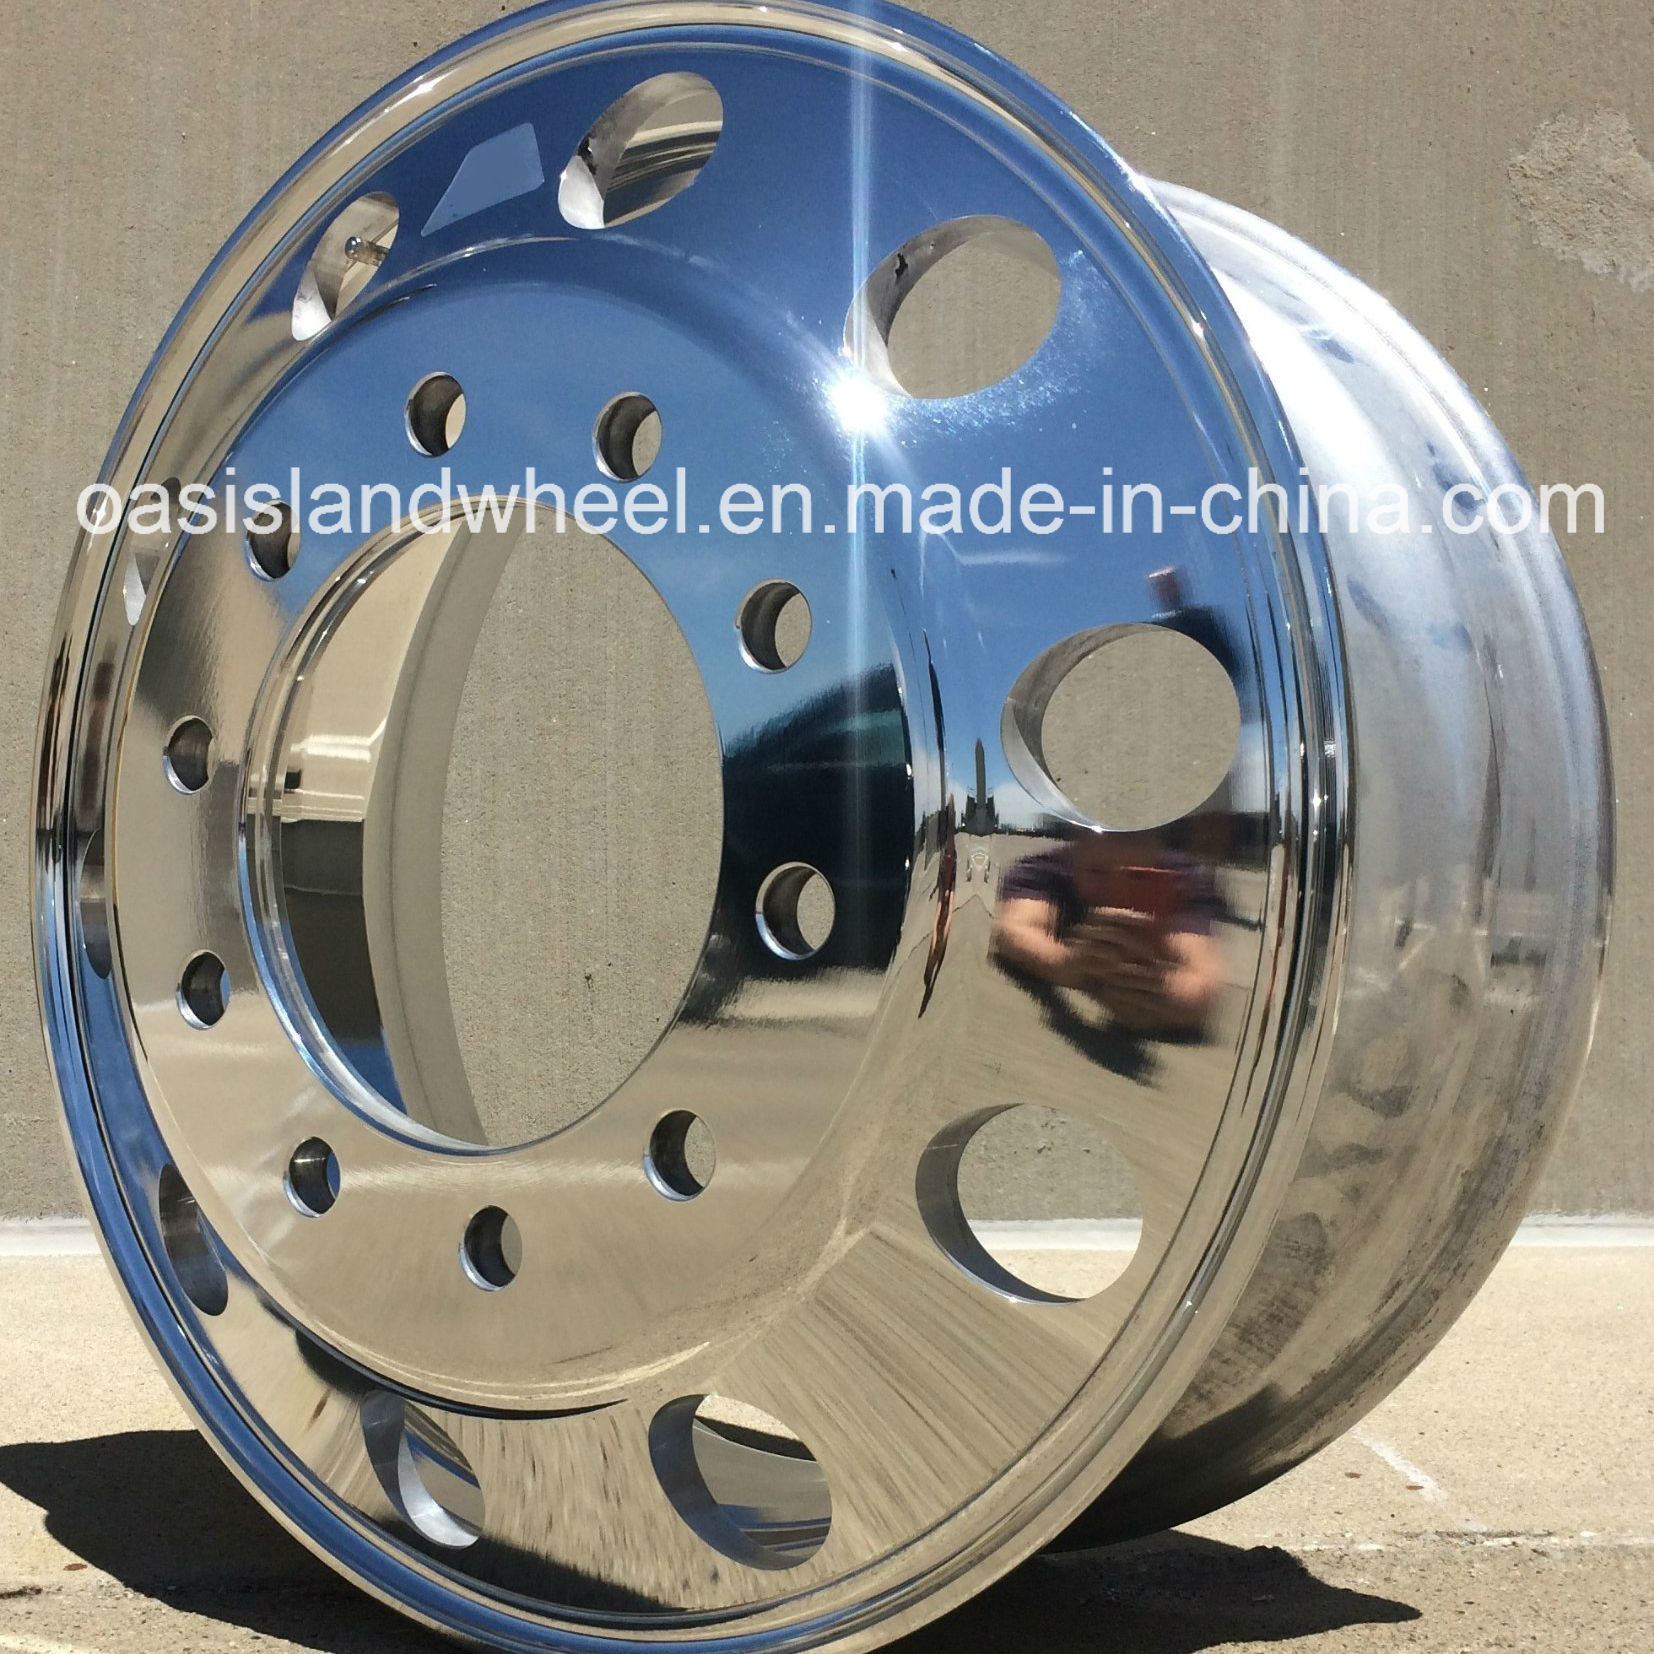 22.5 Aluminum Truck Wheel for 11r22.5 and 12r22.5